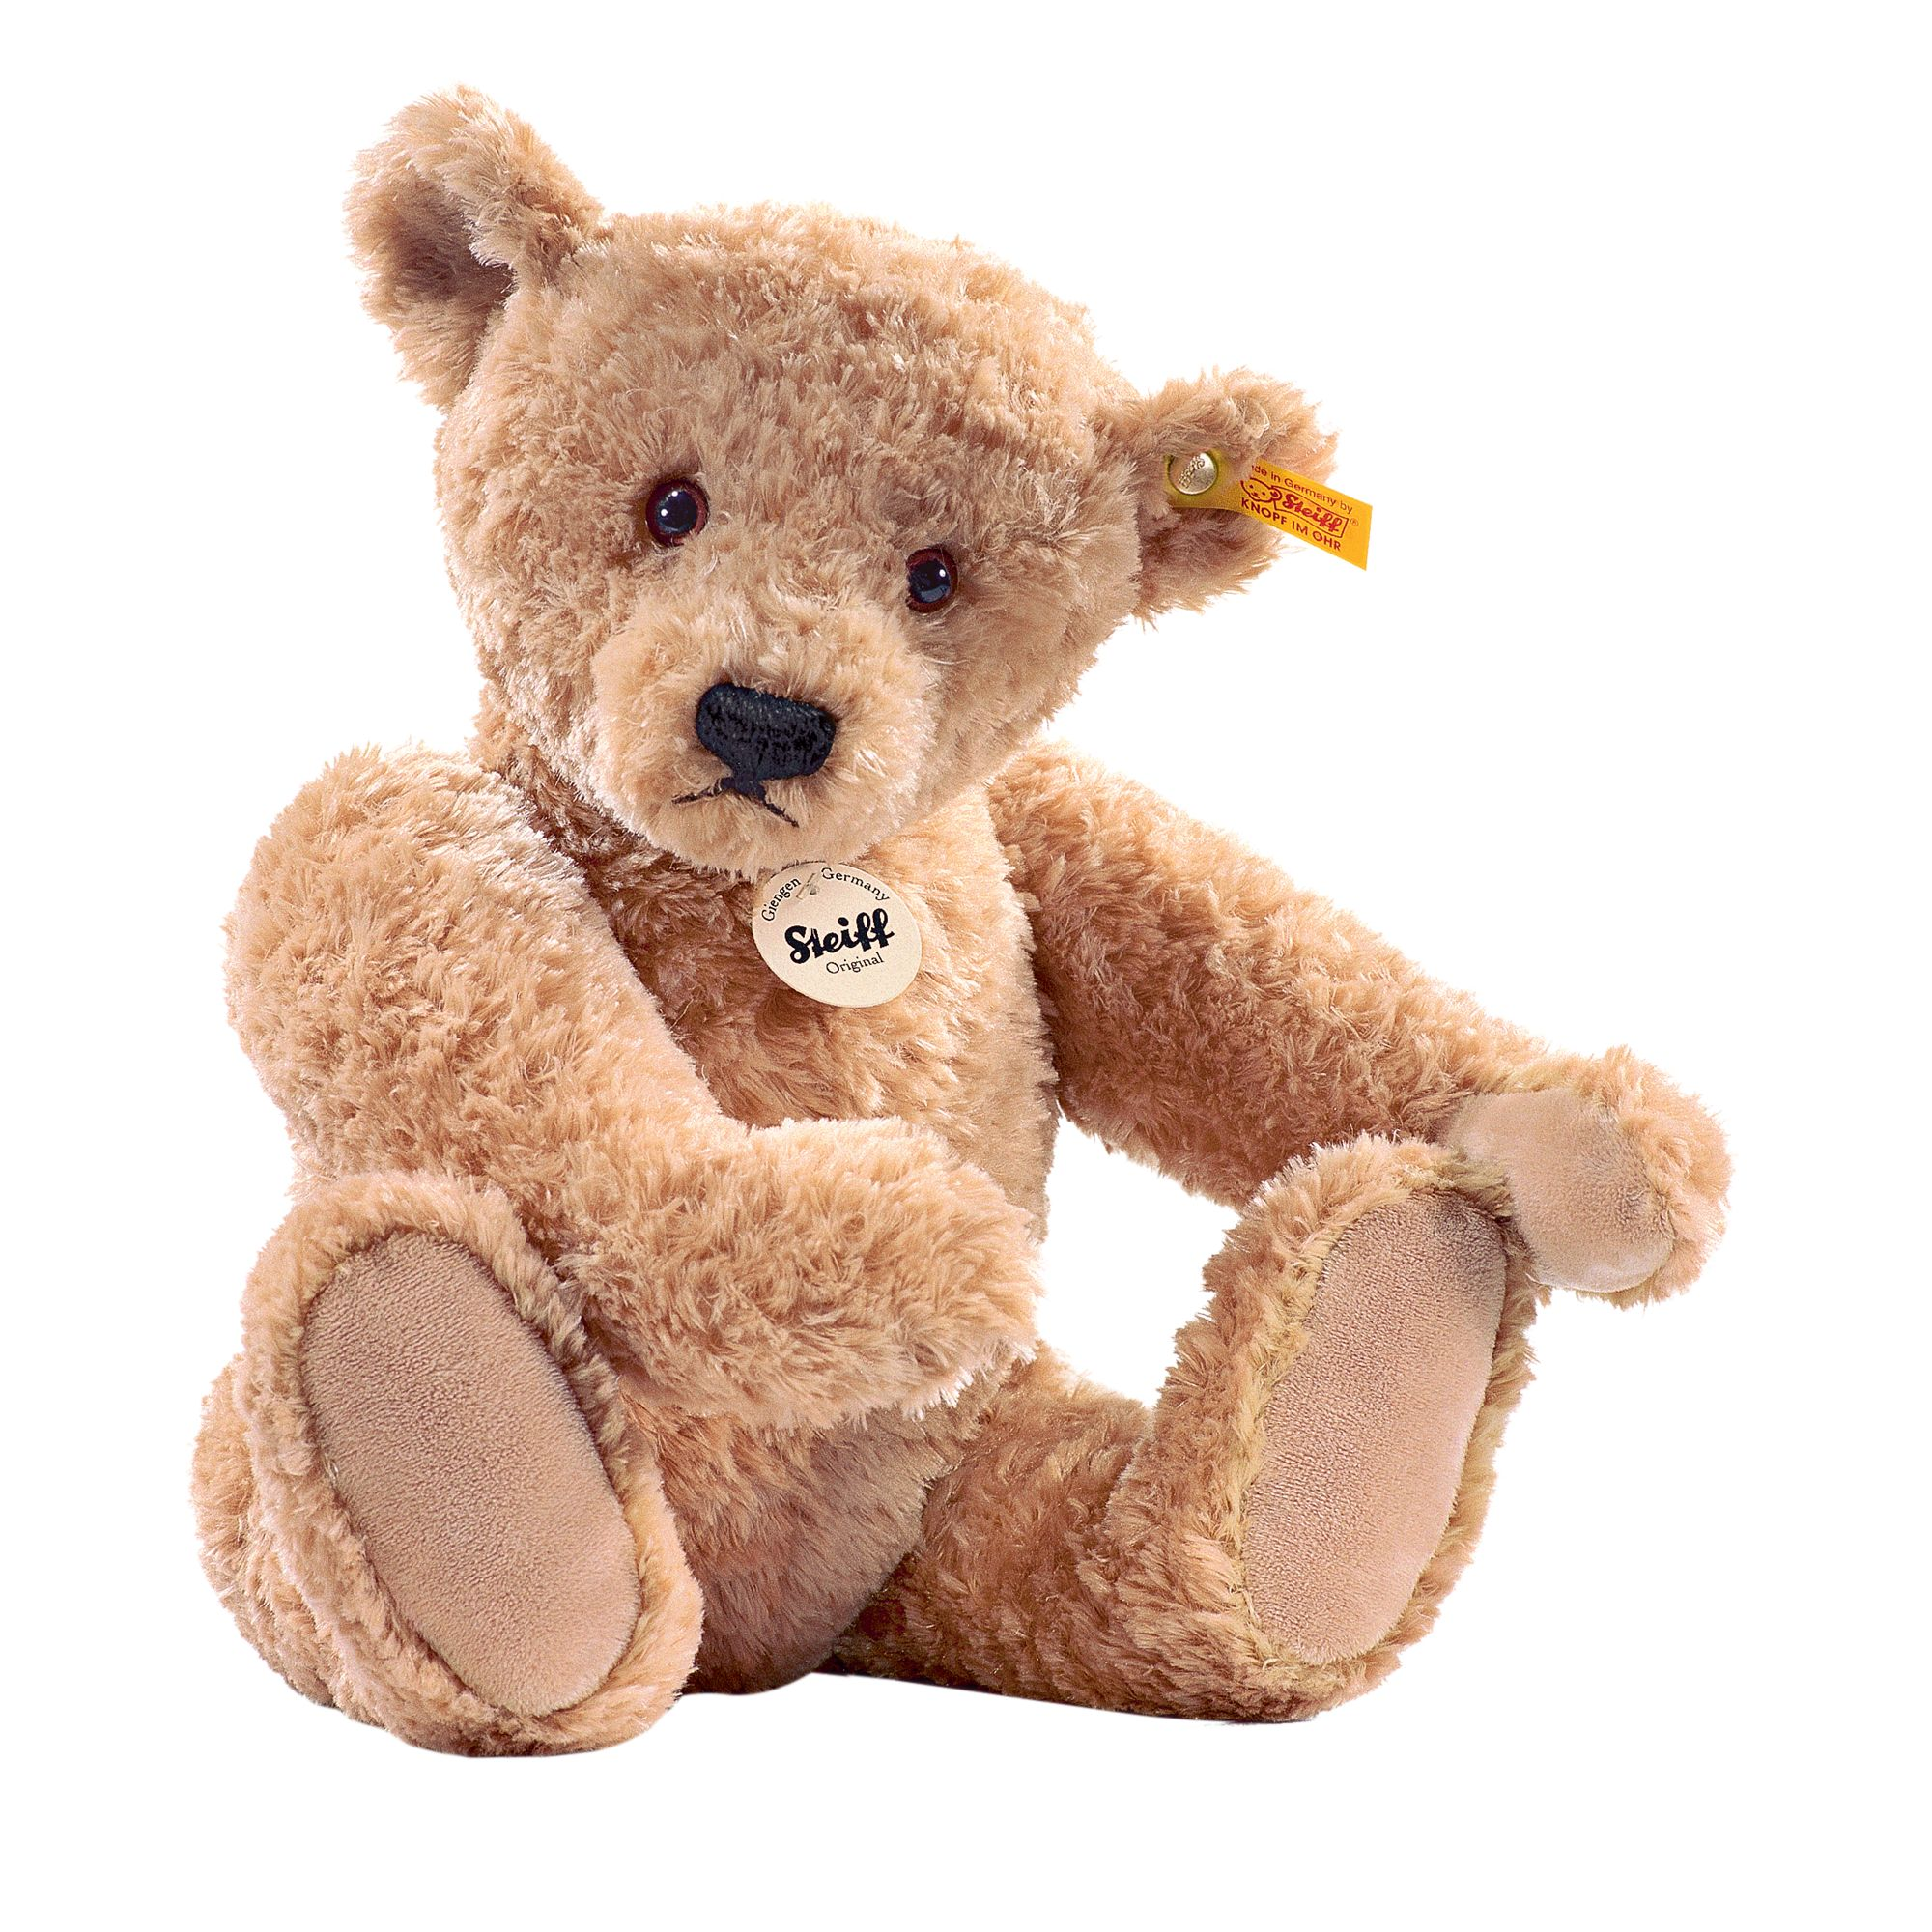 Steiff Steiff Elmar Teddy Bear Soft Toy, Medium